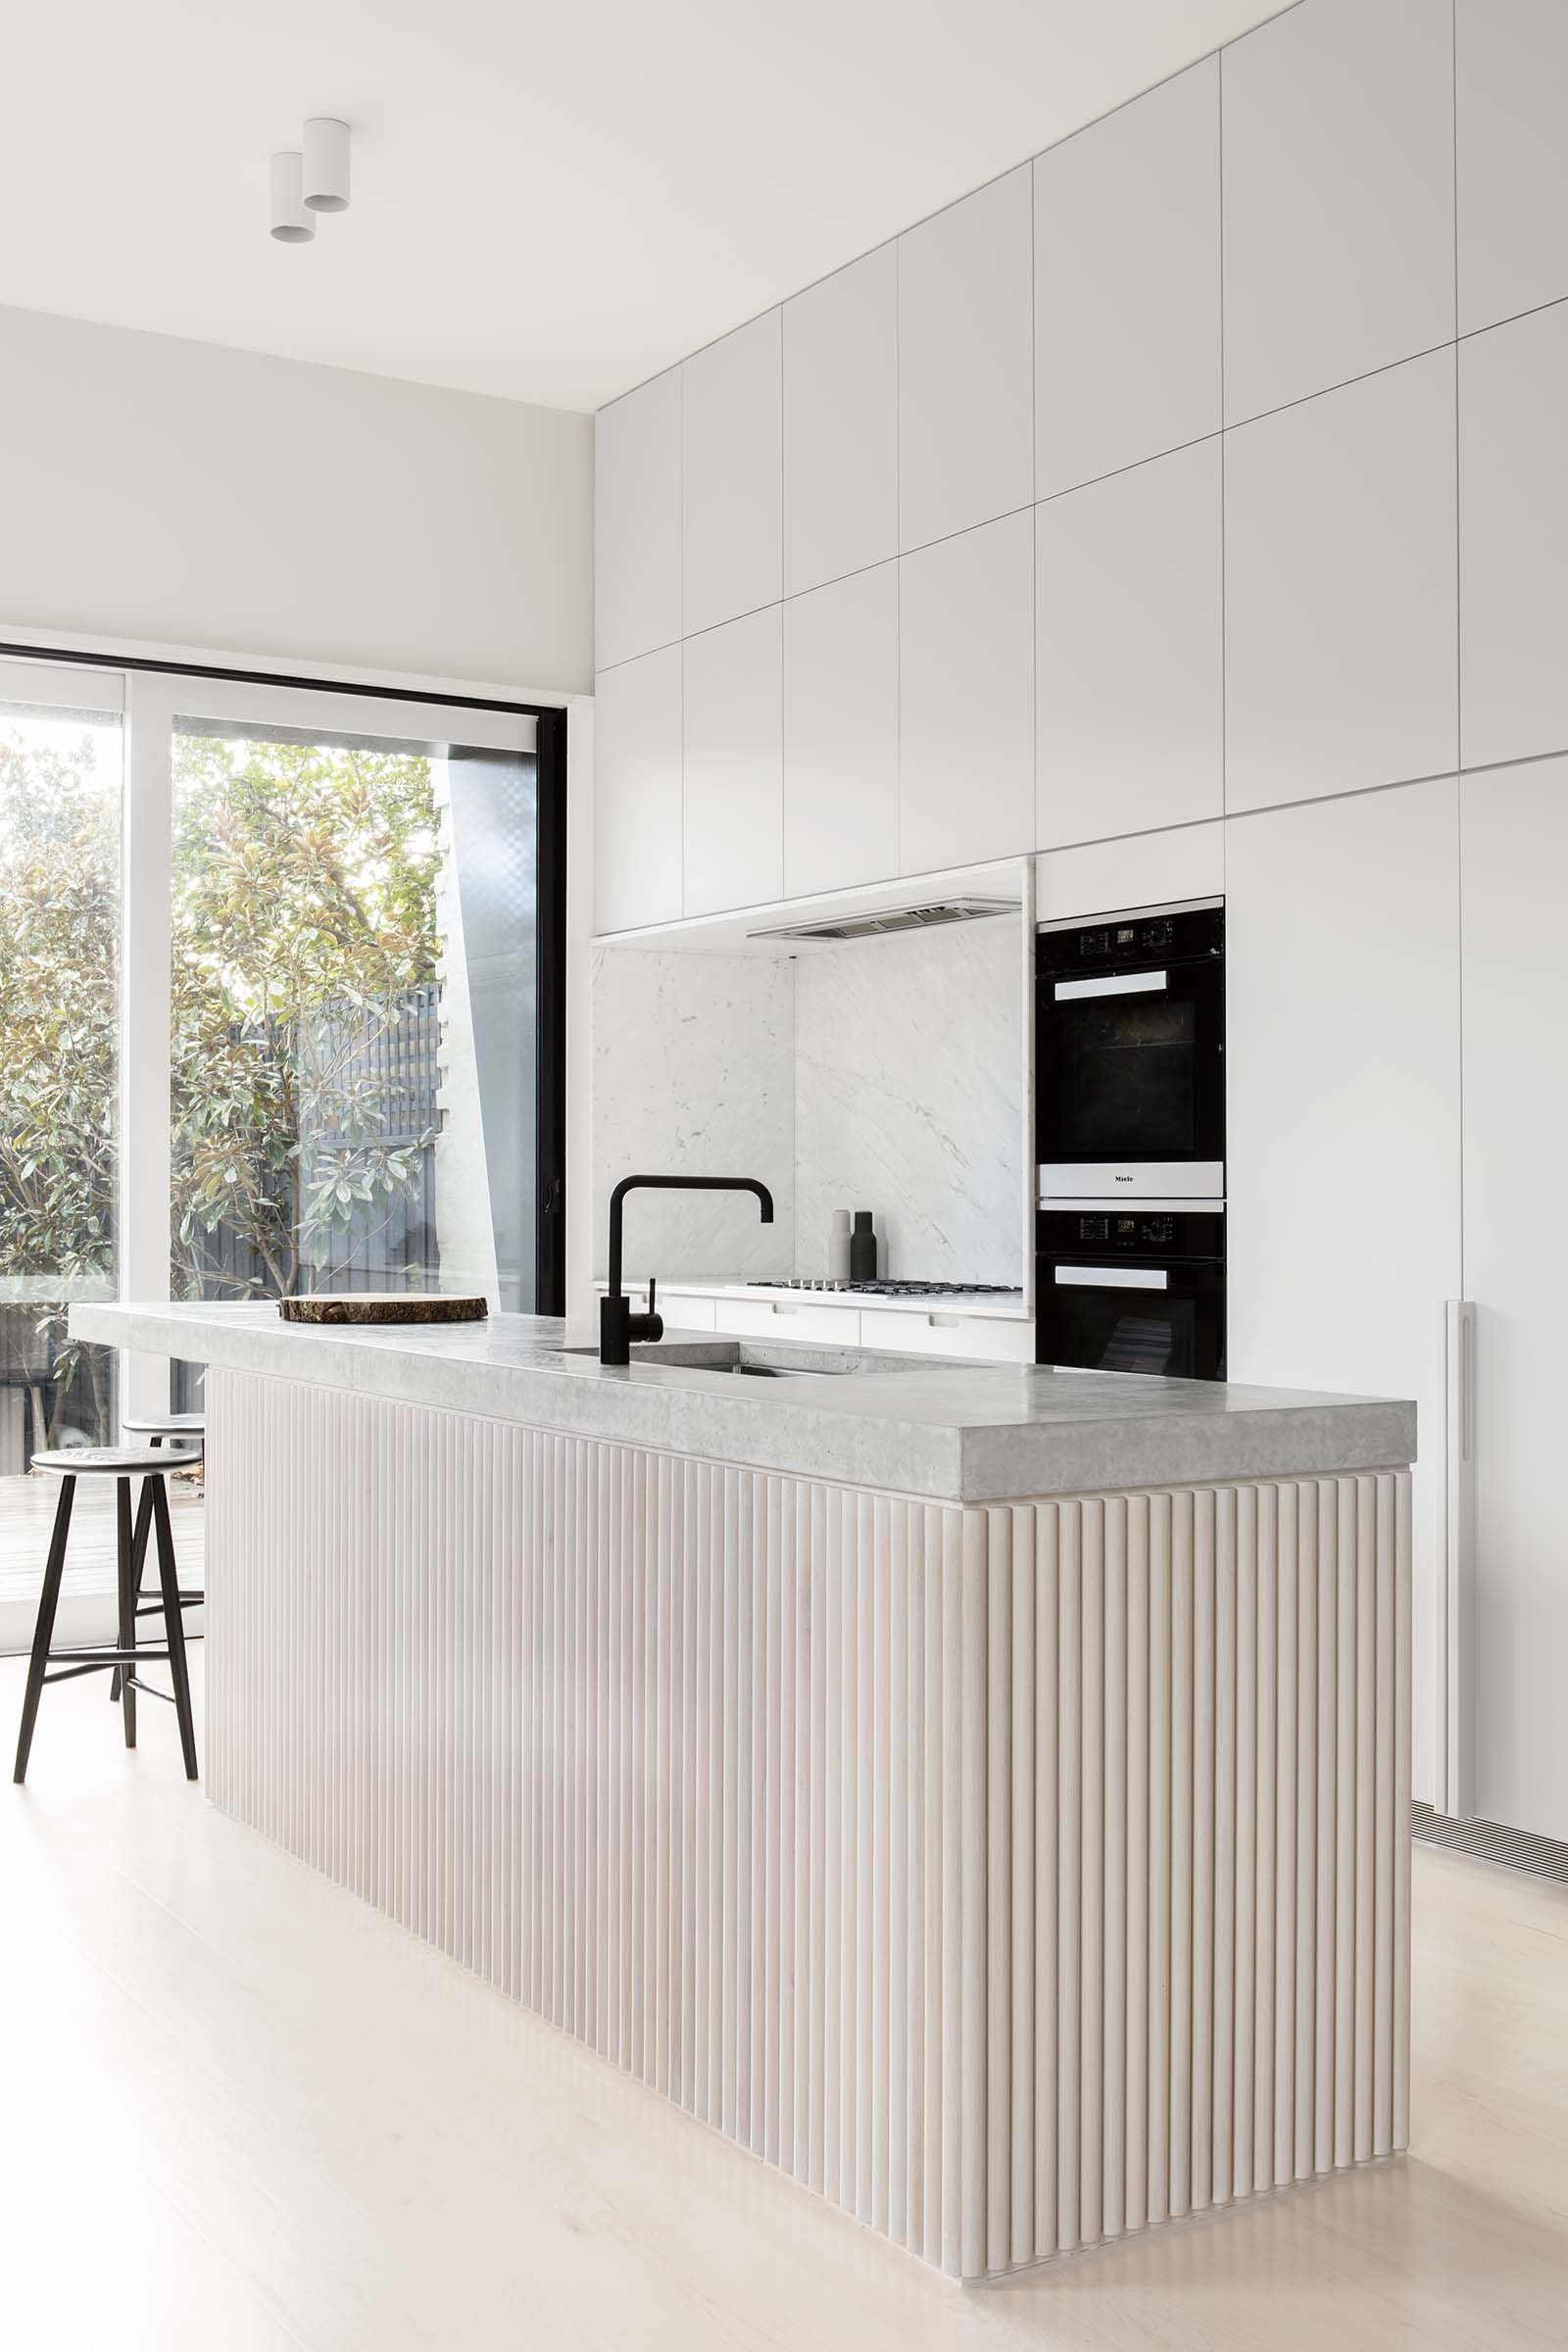 These Kitchens Are the Secret to Warm Minimalism | Arquitectura ...